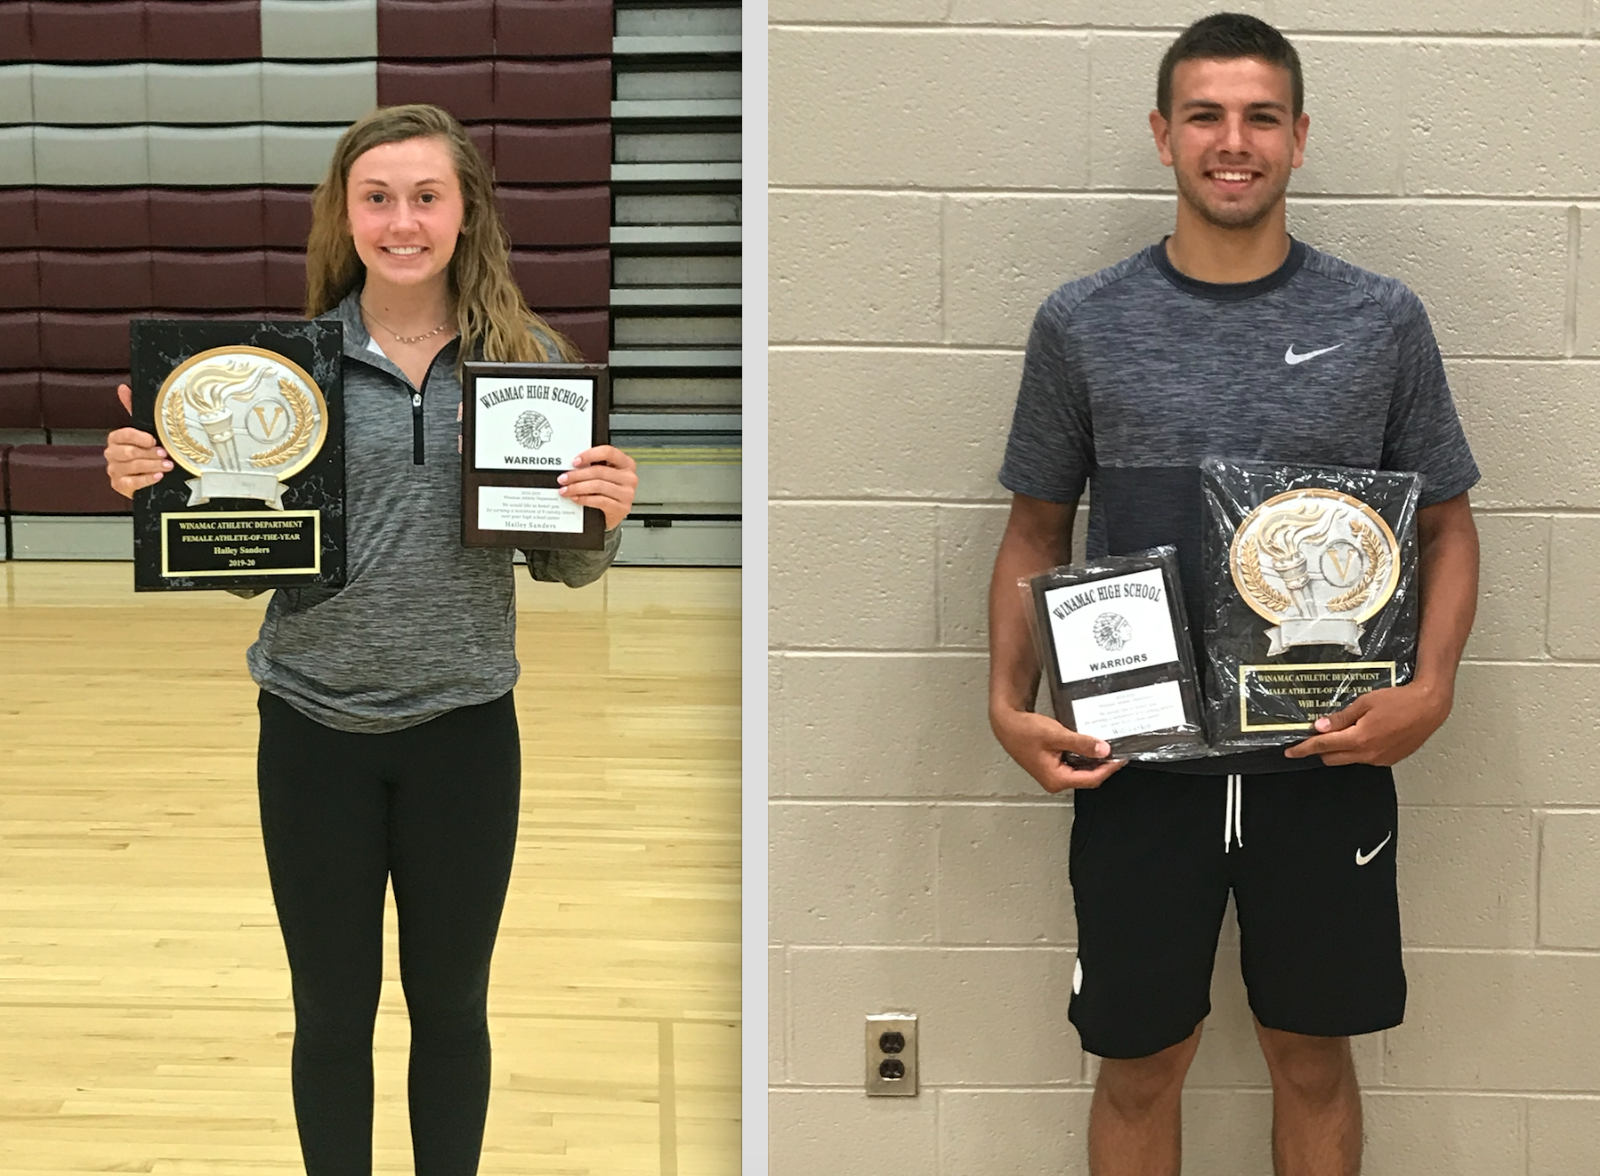 2019-20 Athlete-of-the-Year Awards